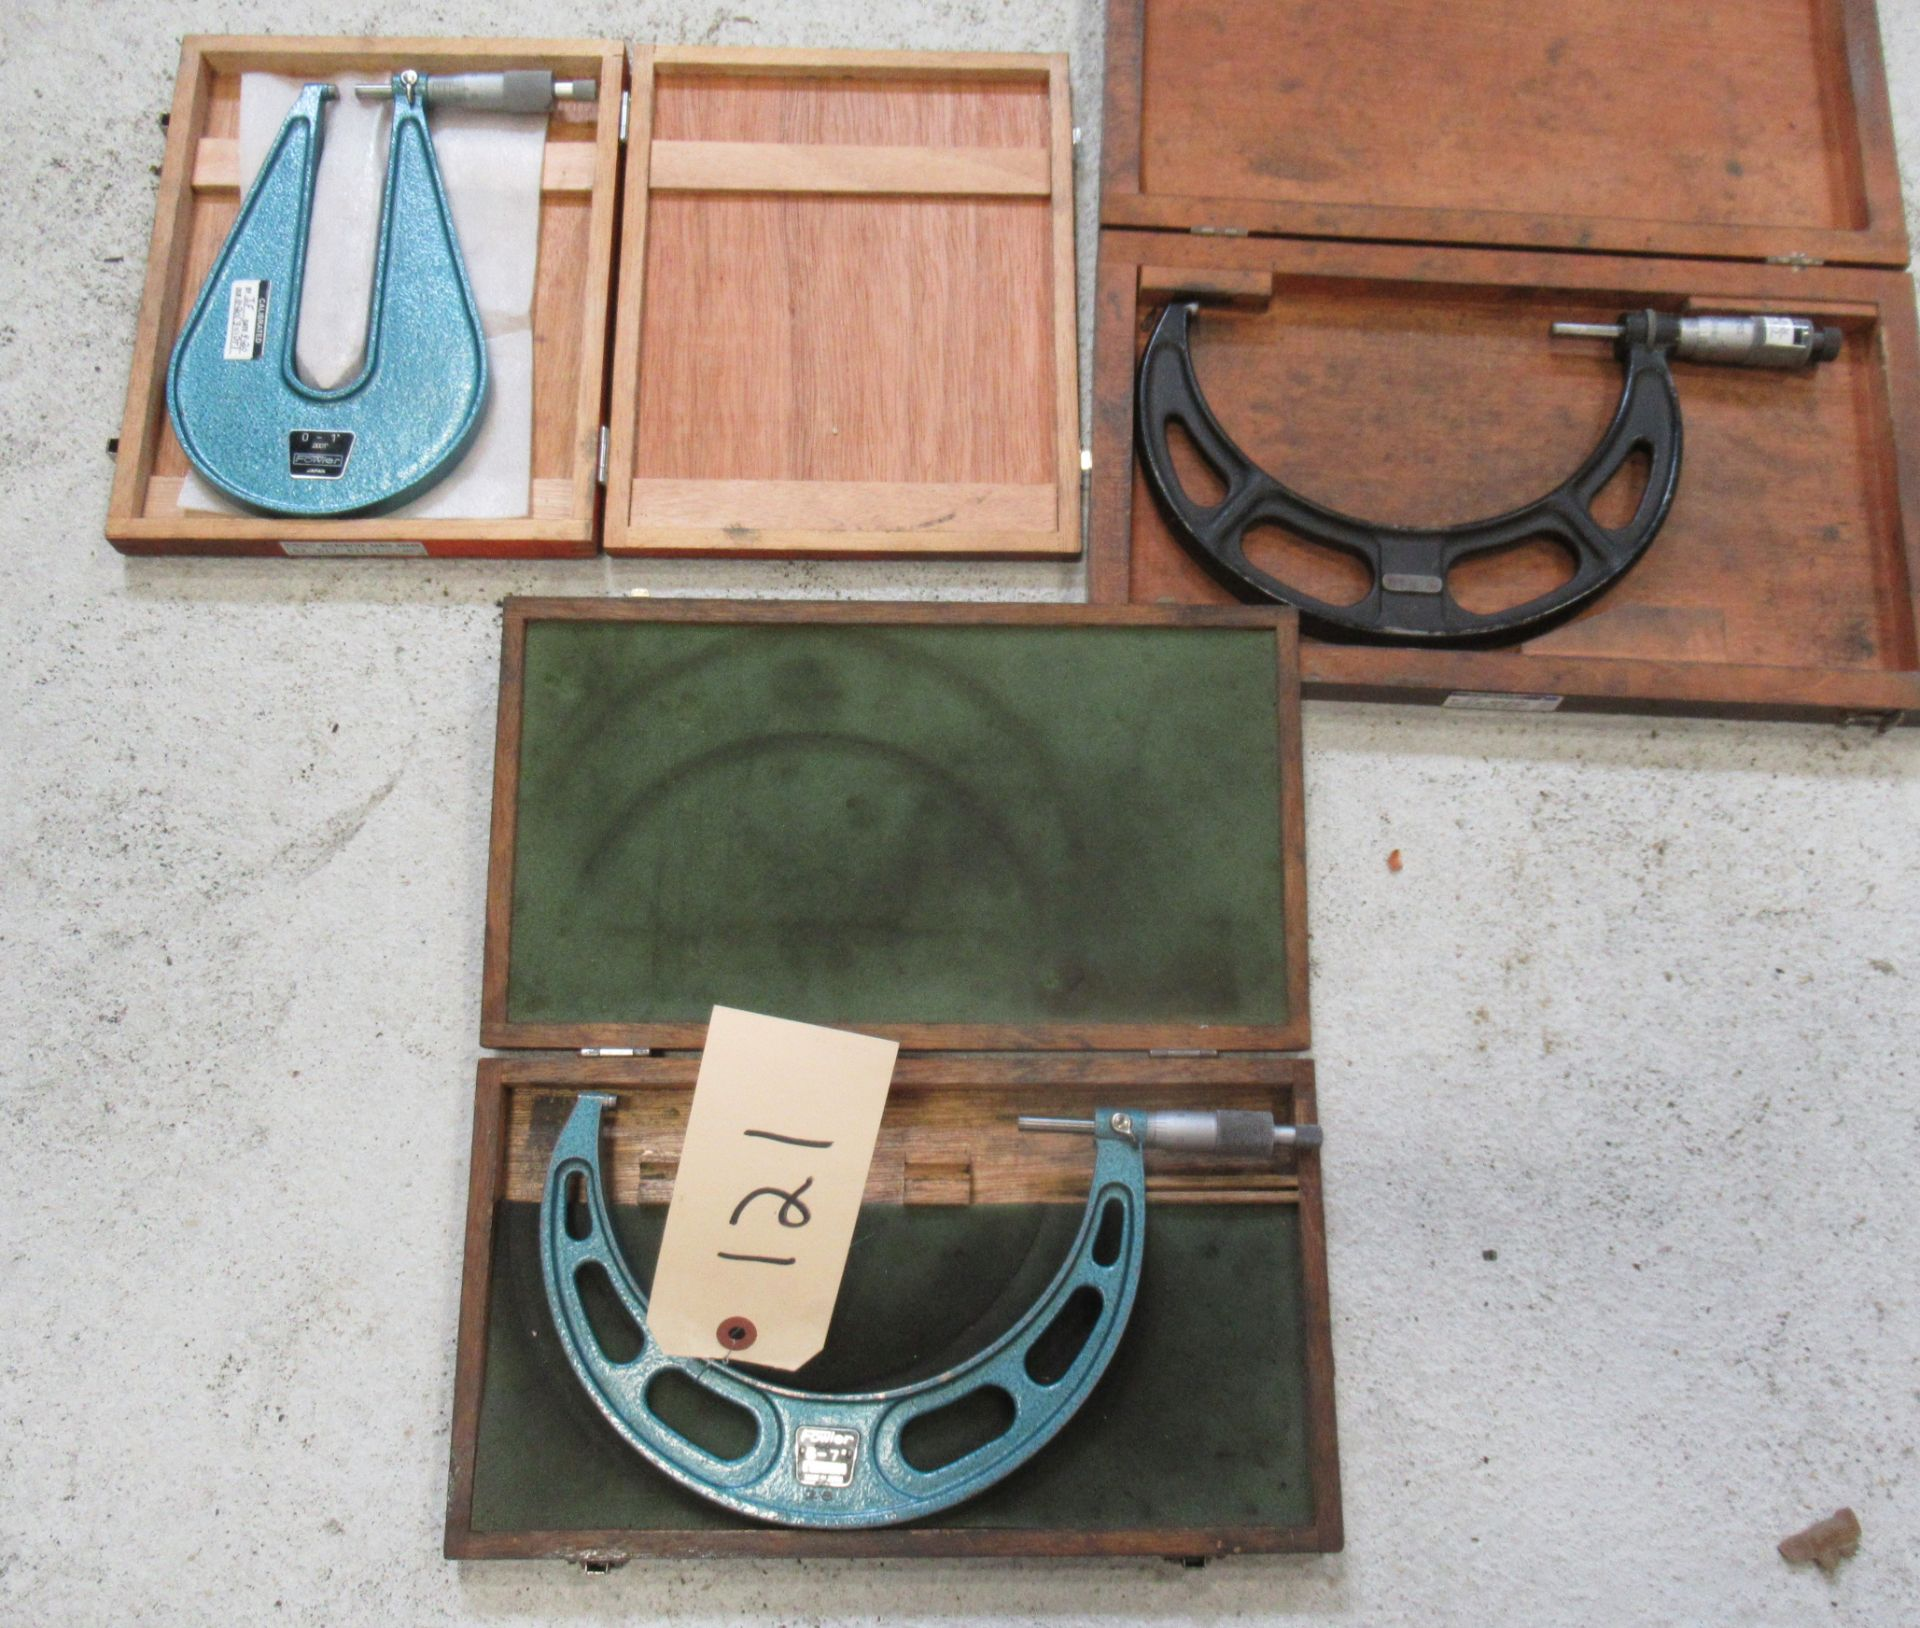 (3) ASSORTED MICROMETERS